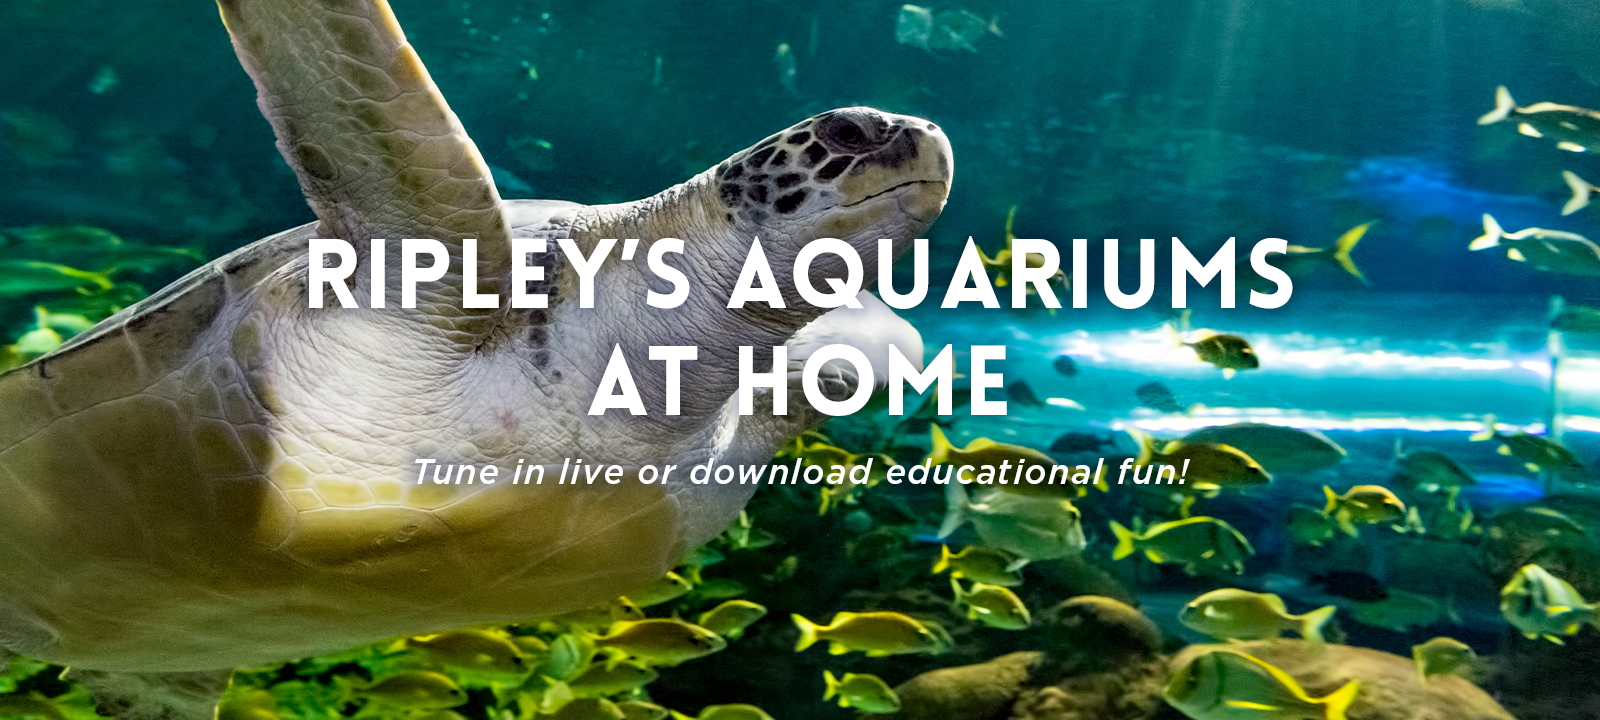 Ripley's Aquariums At Home Activities Banner